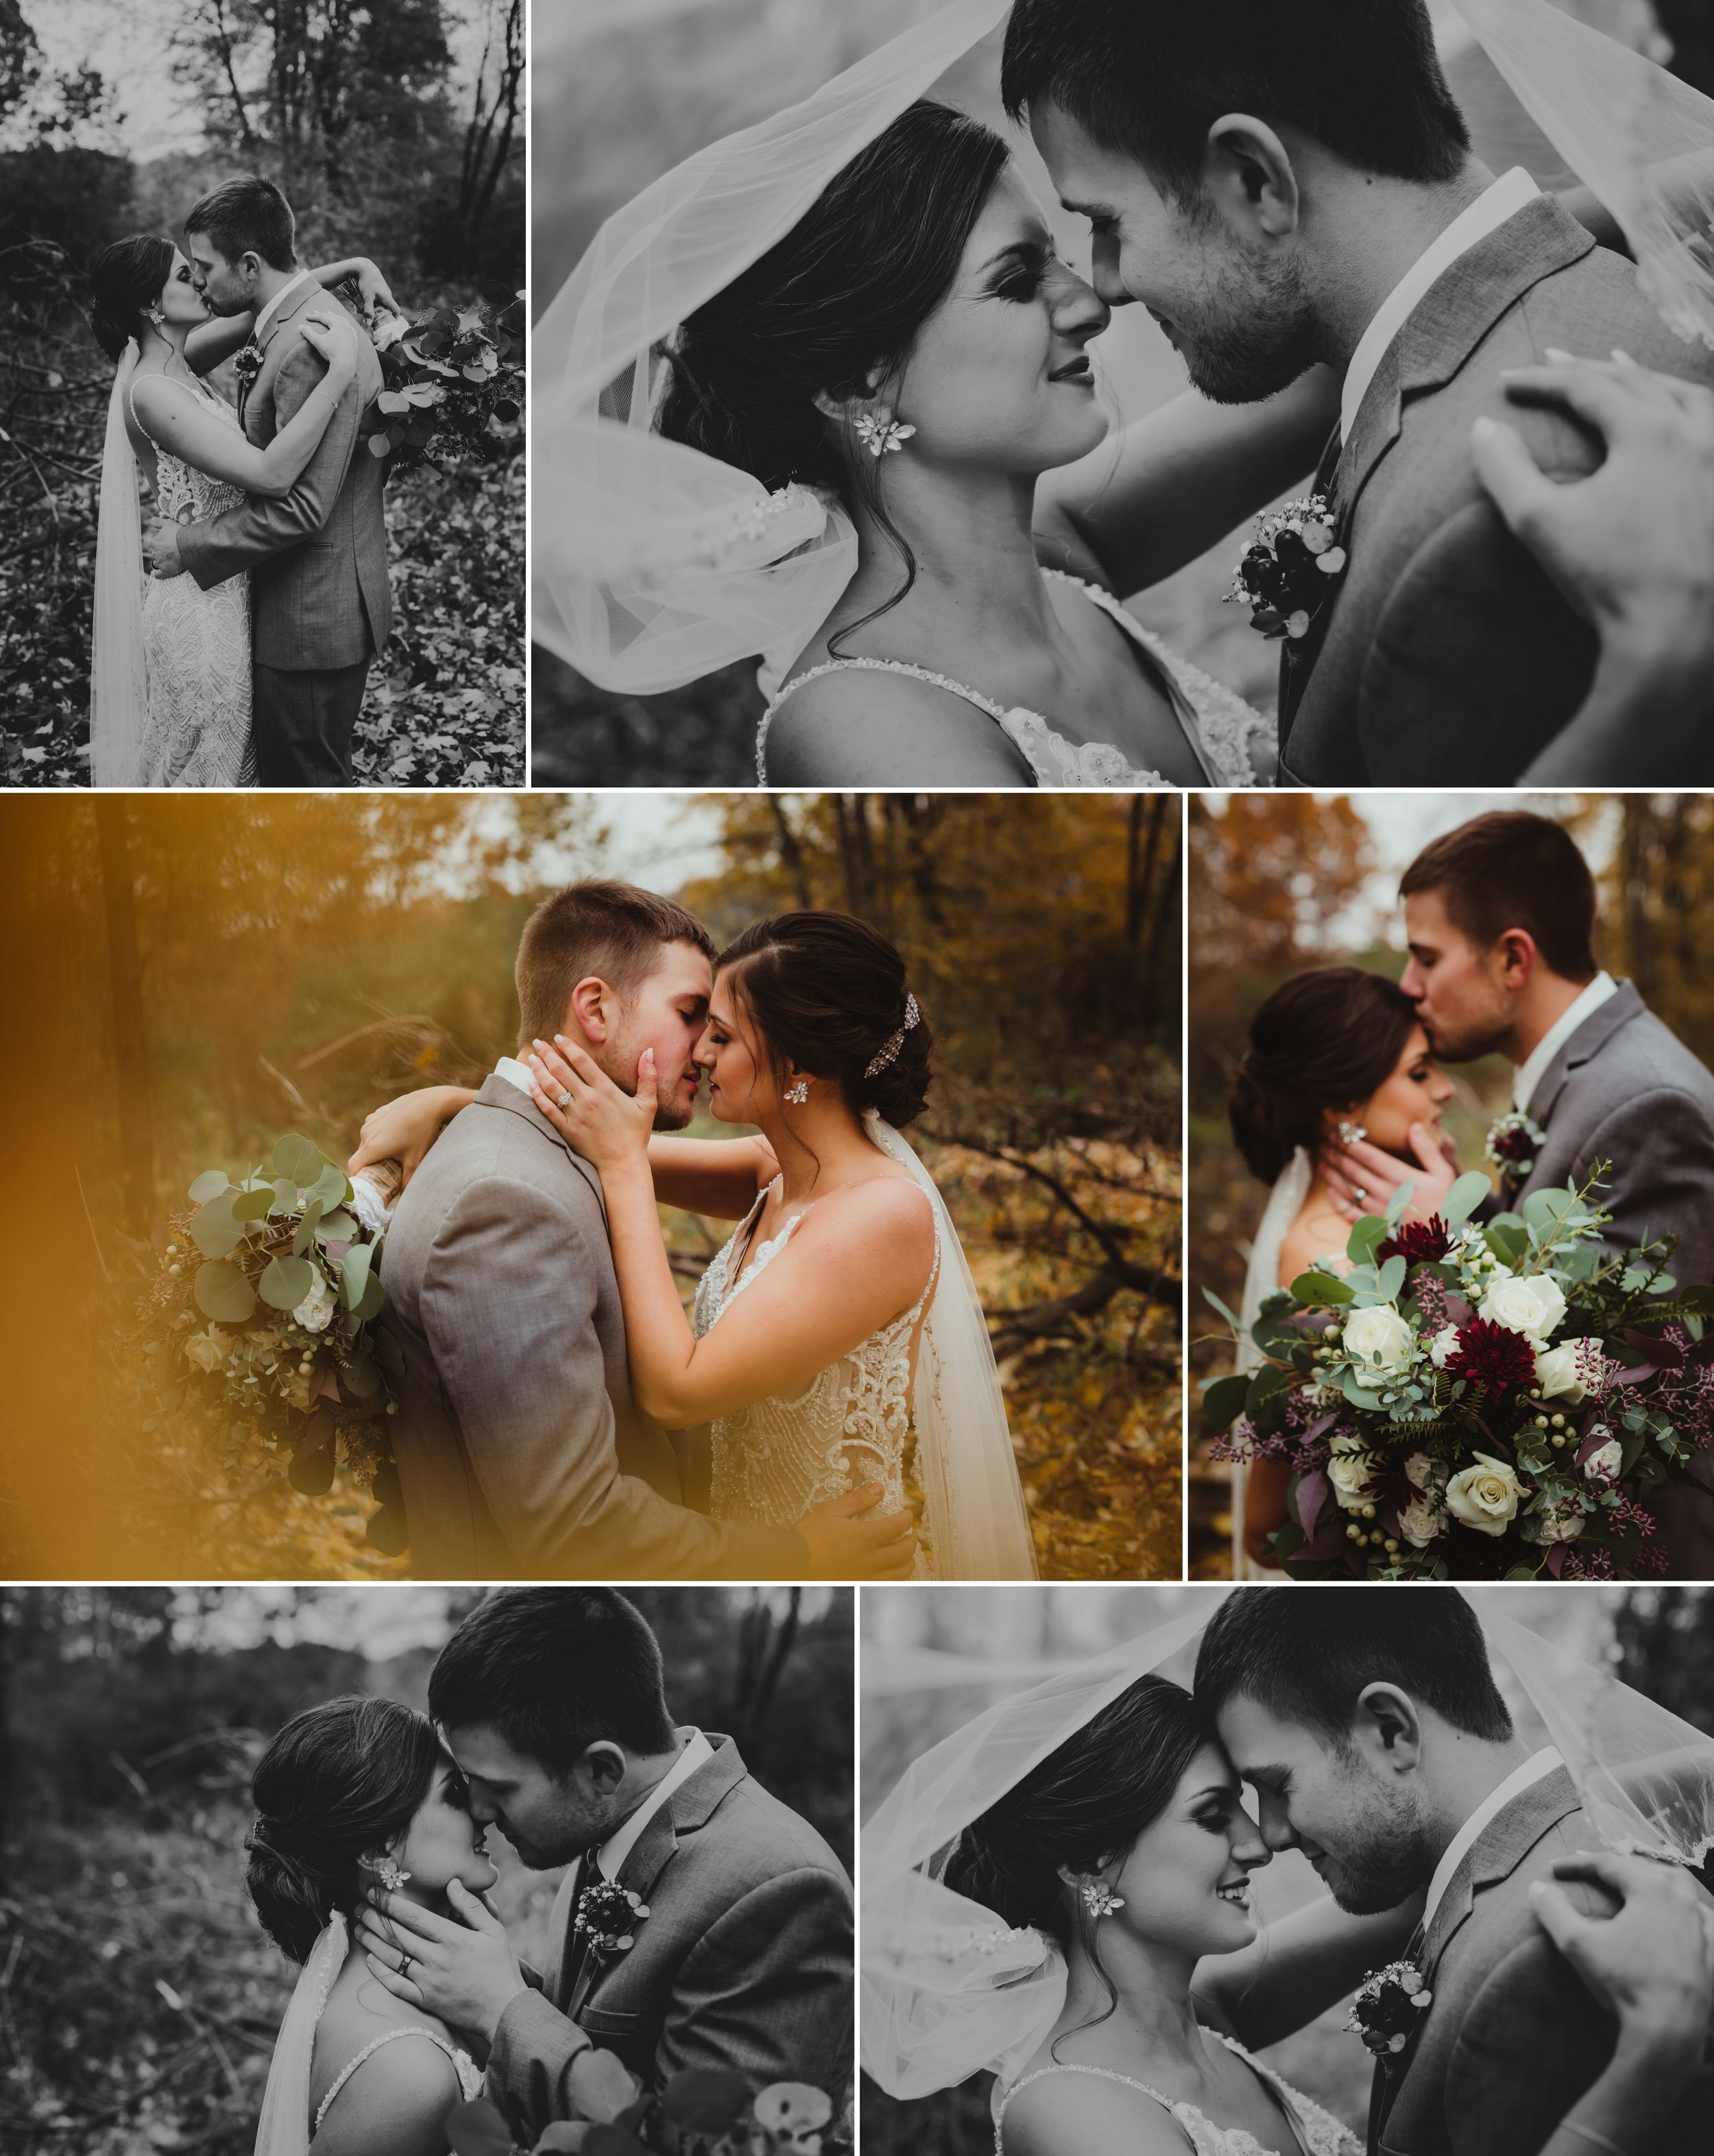 Close up intimate images of the bride and groom kissing, putting their foreheads together, and smiling close.